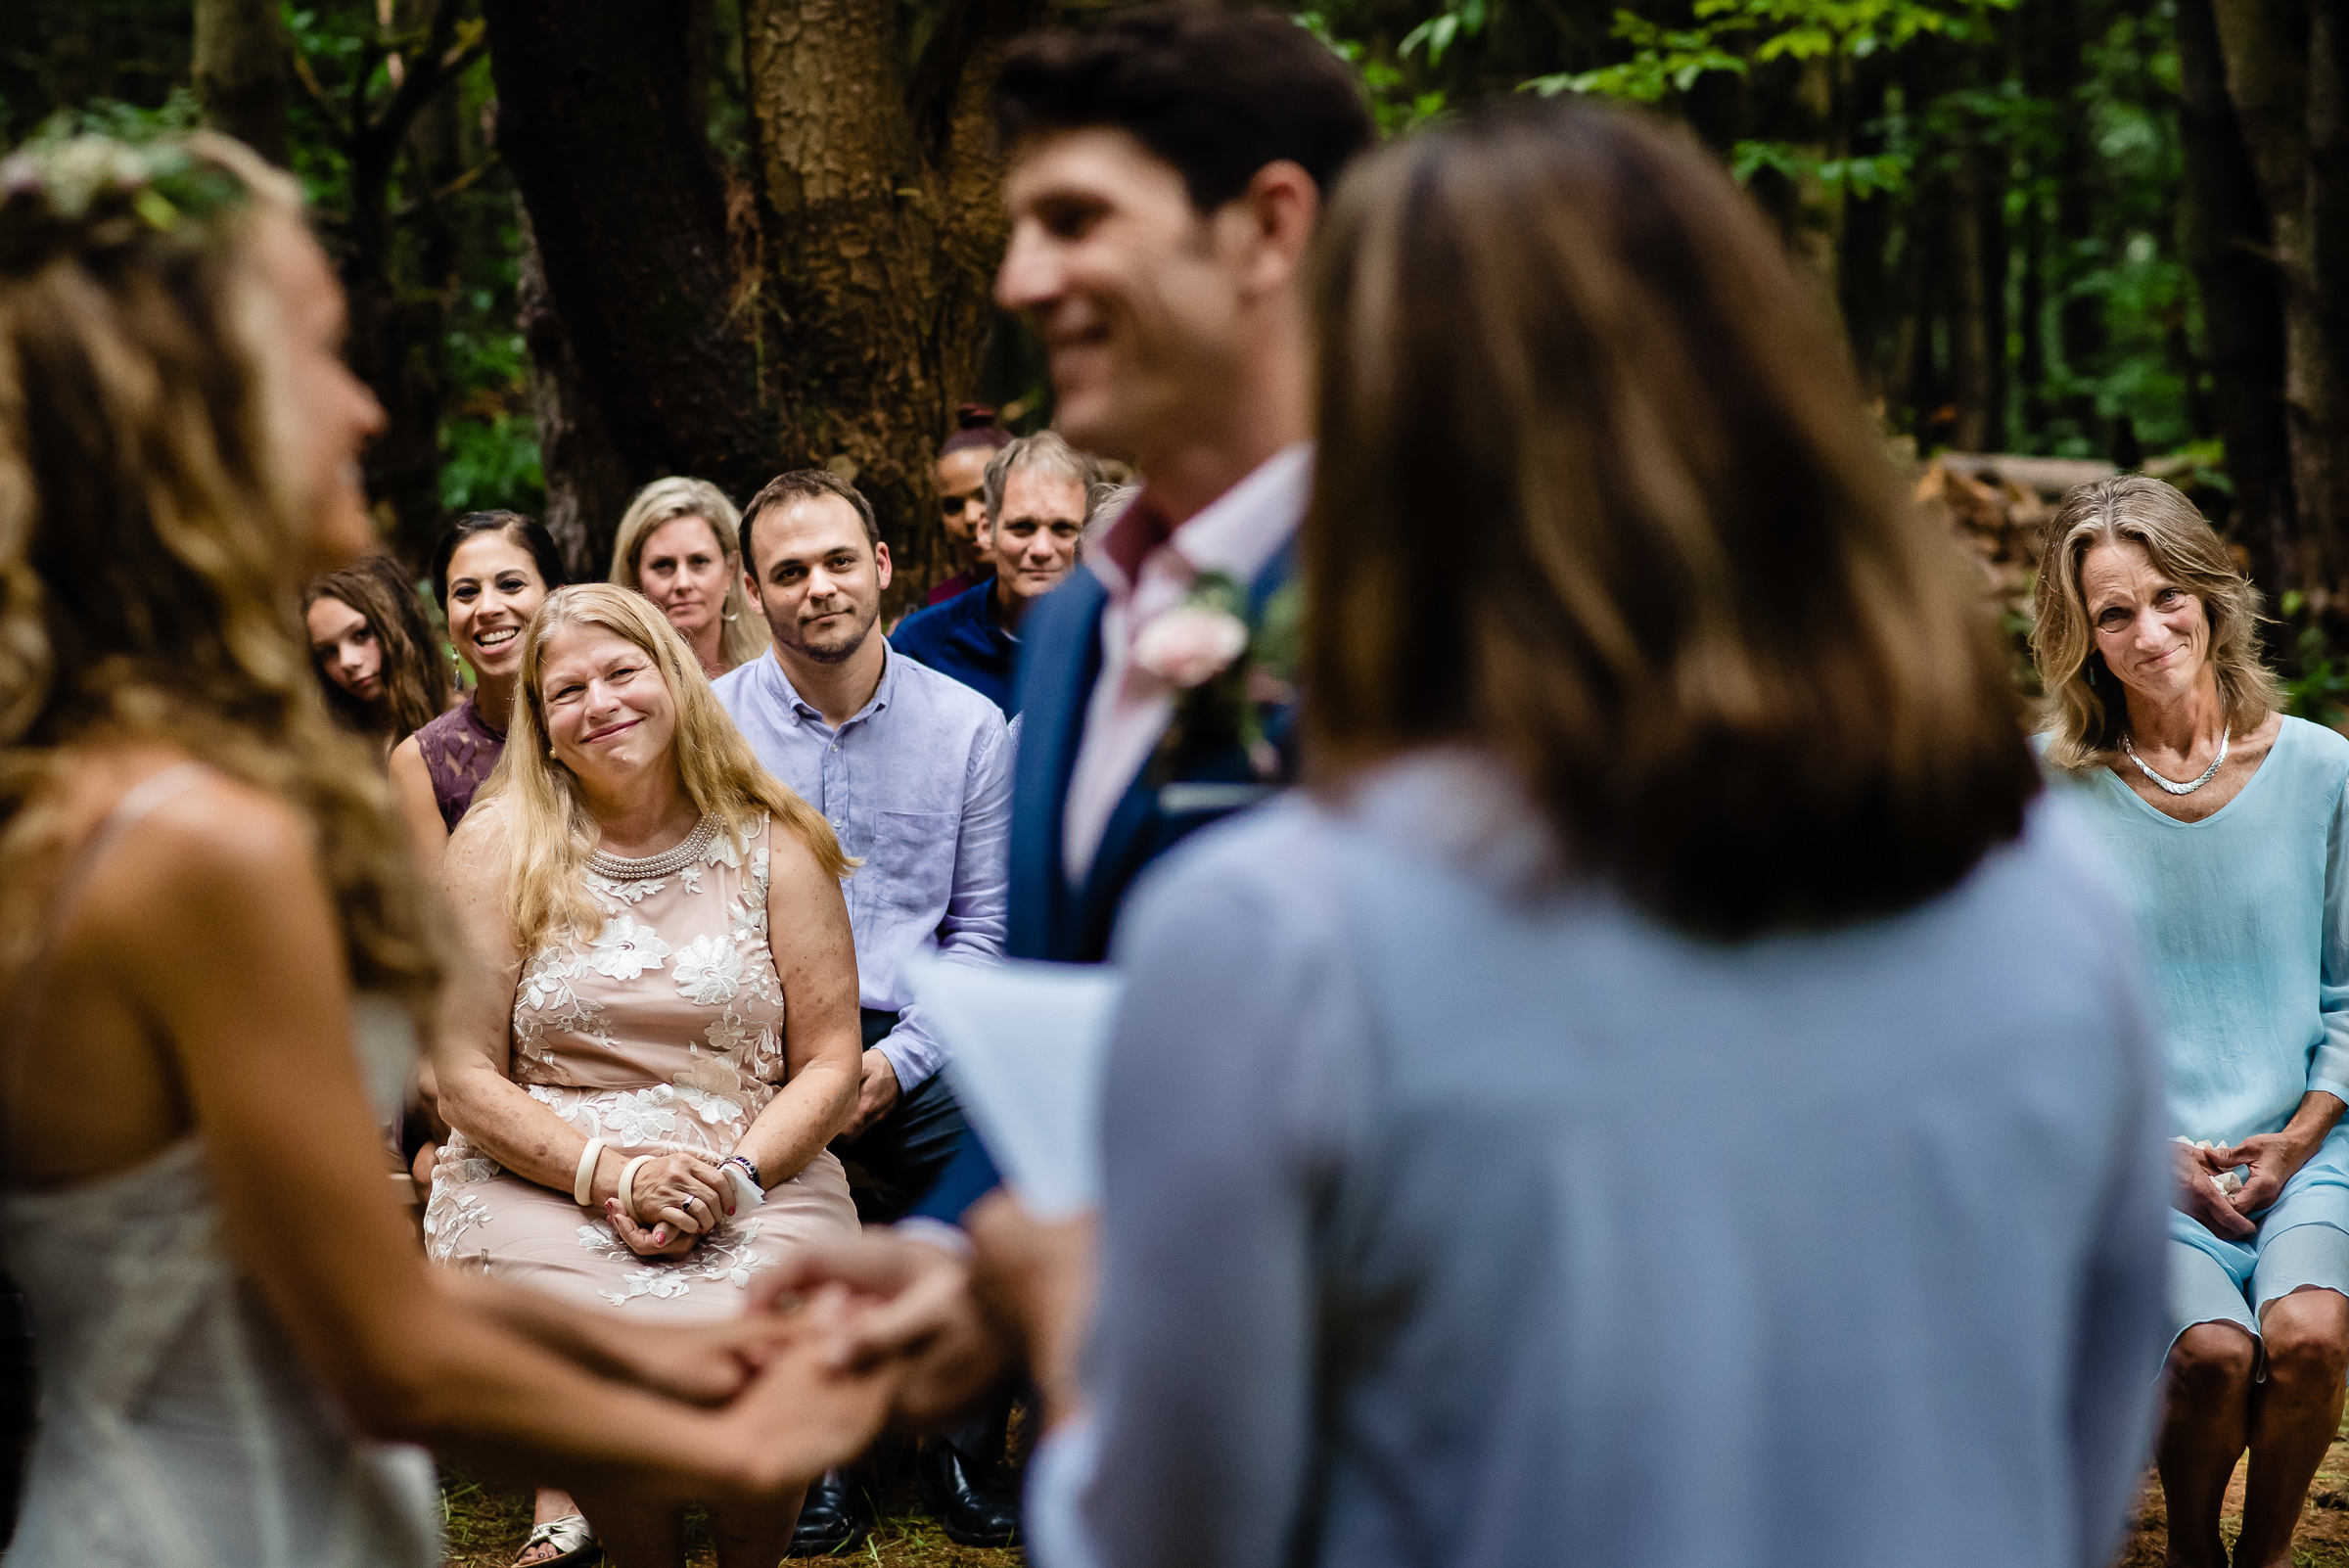 Moms smiling proudly during ceremony - photo by Hannah Photography